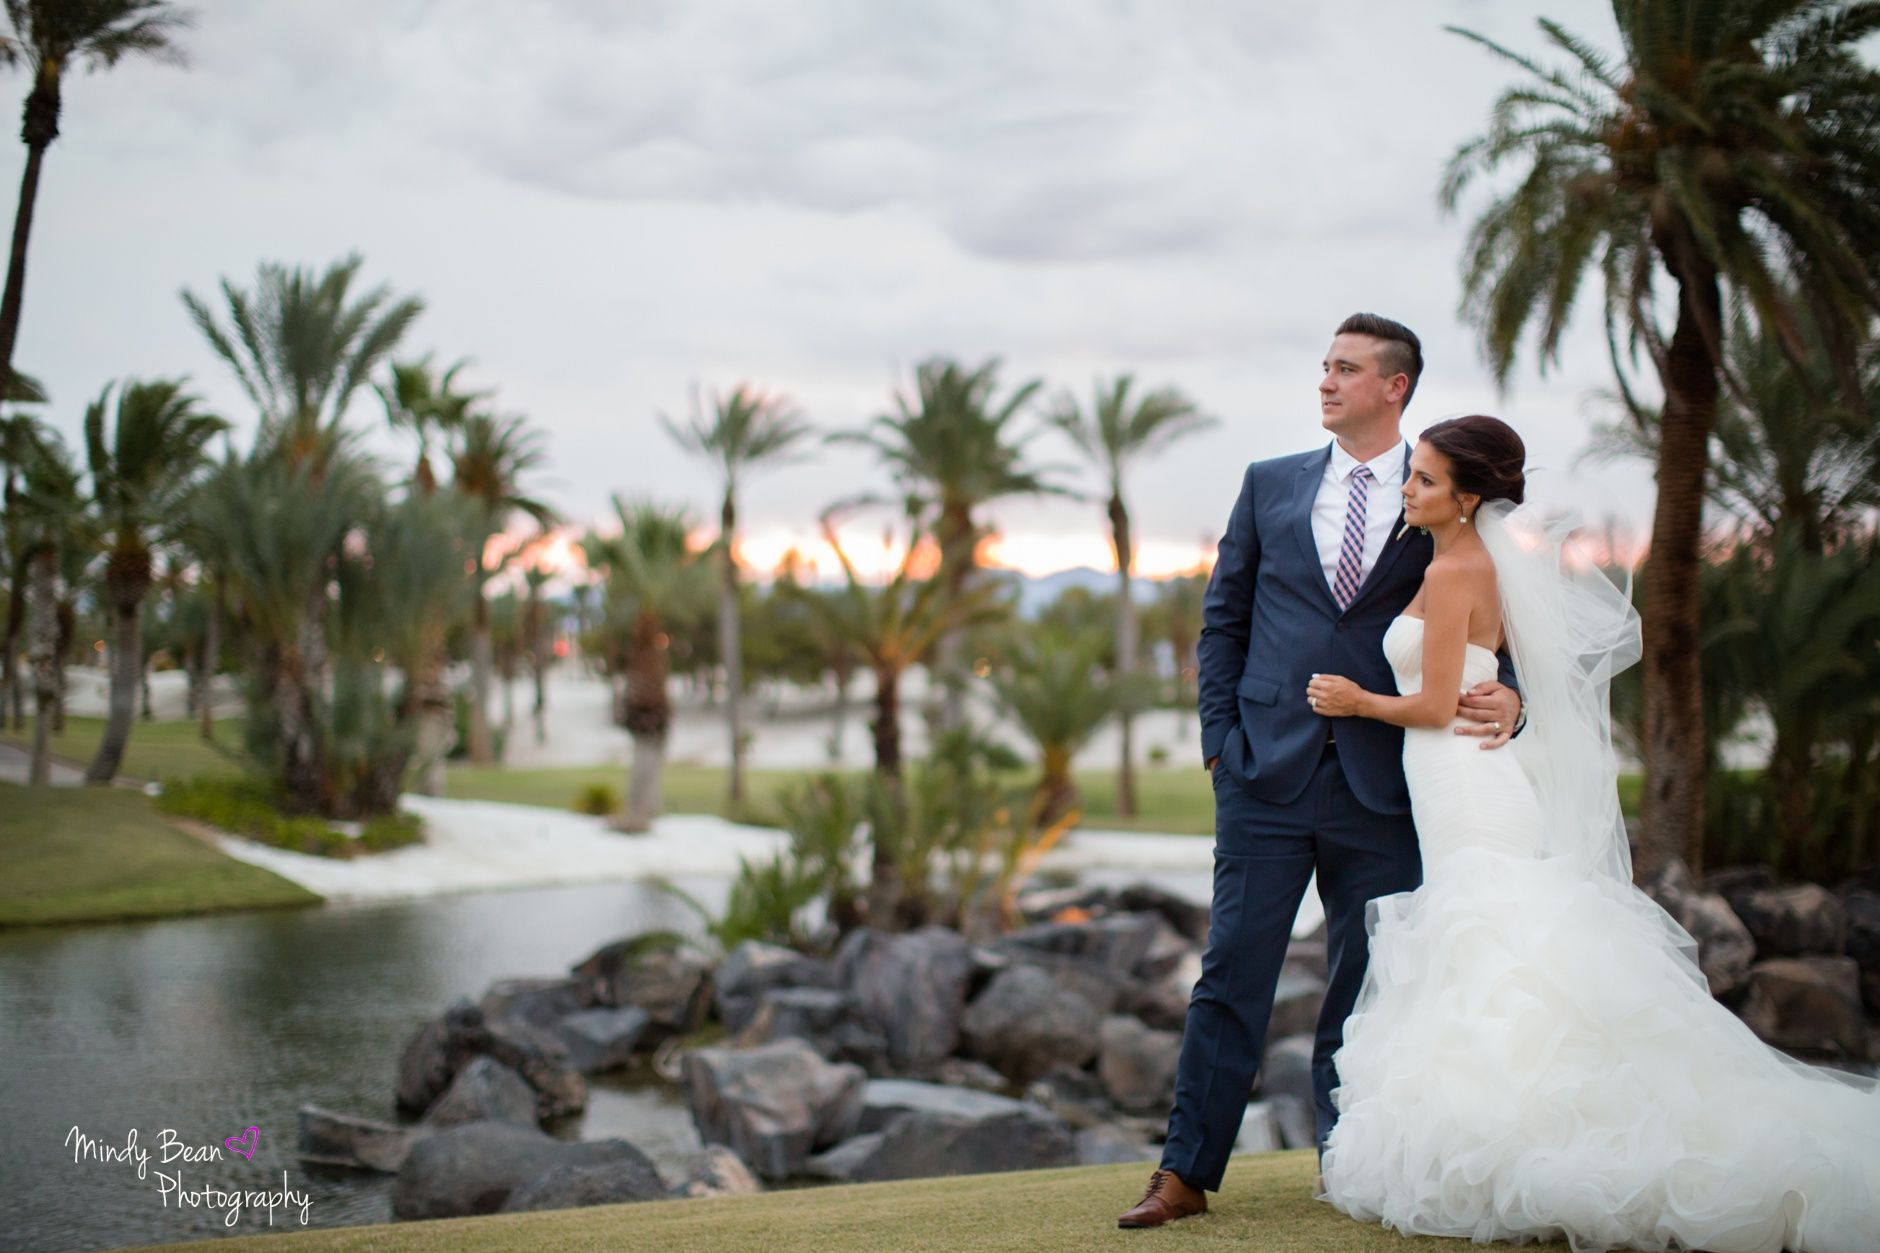 Las Vegas Wedding Destination Venue Cili Restaurant Golf Course